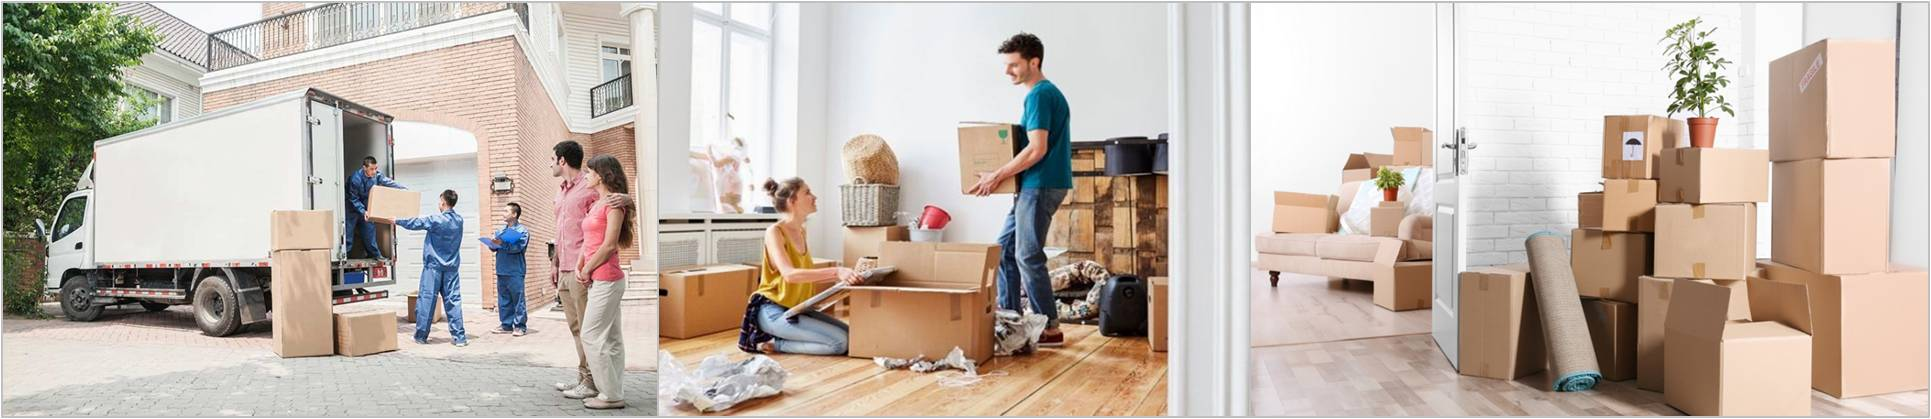 Moving house - We've got a list of things to do